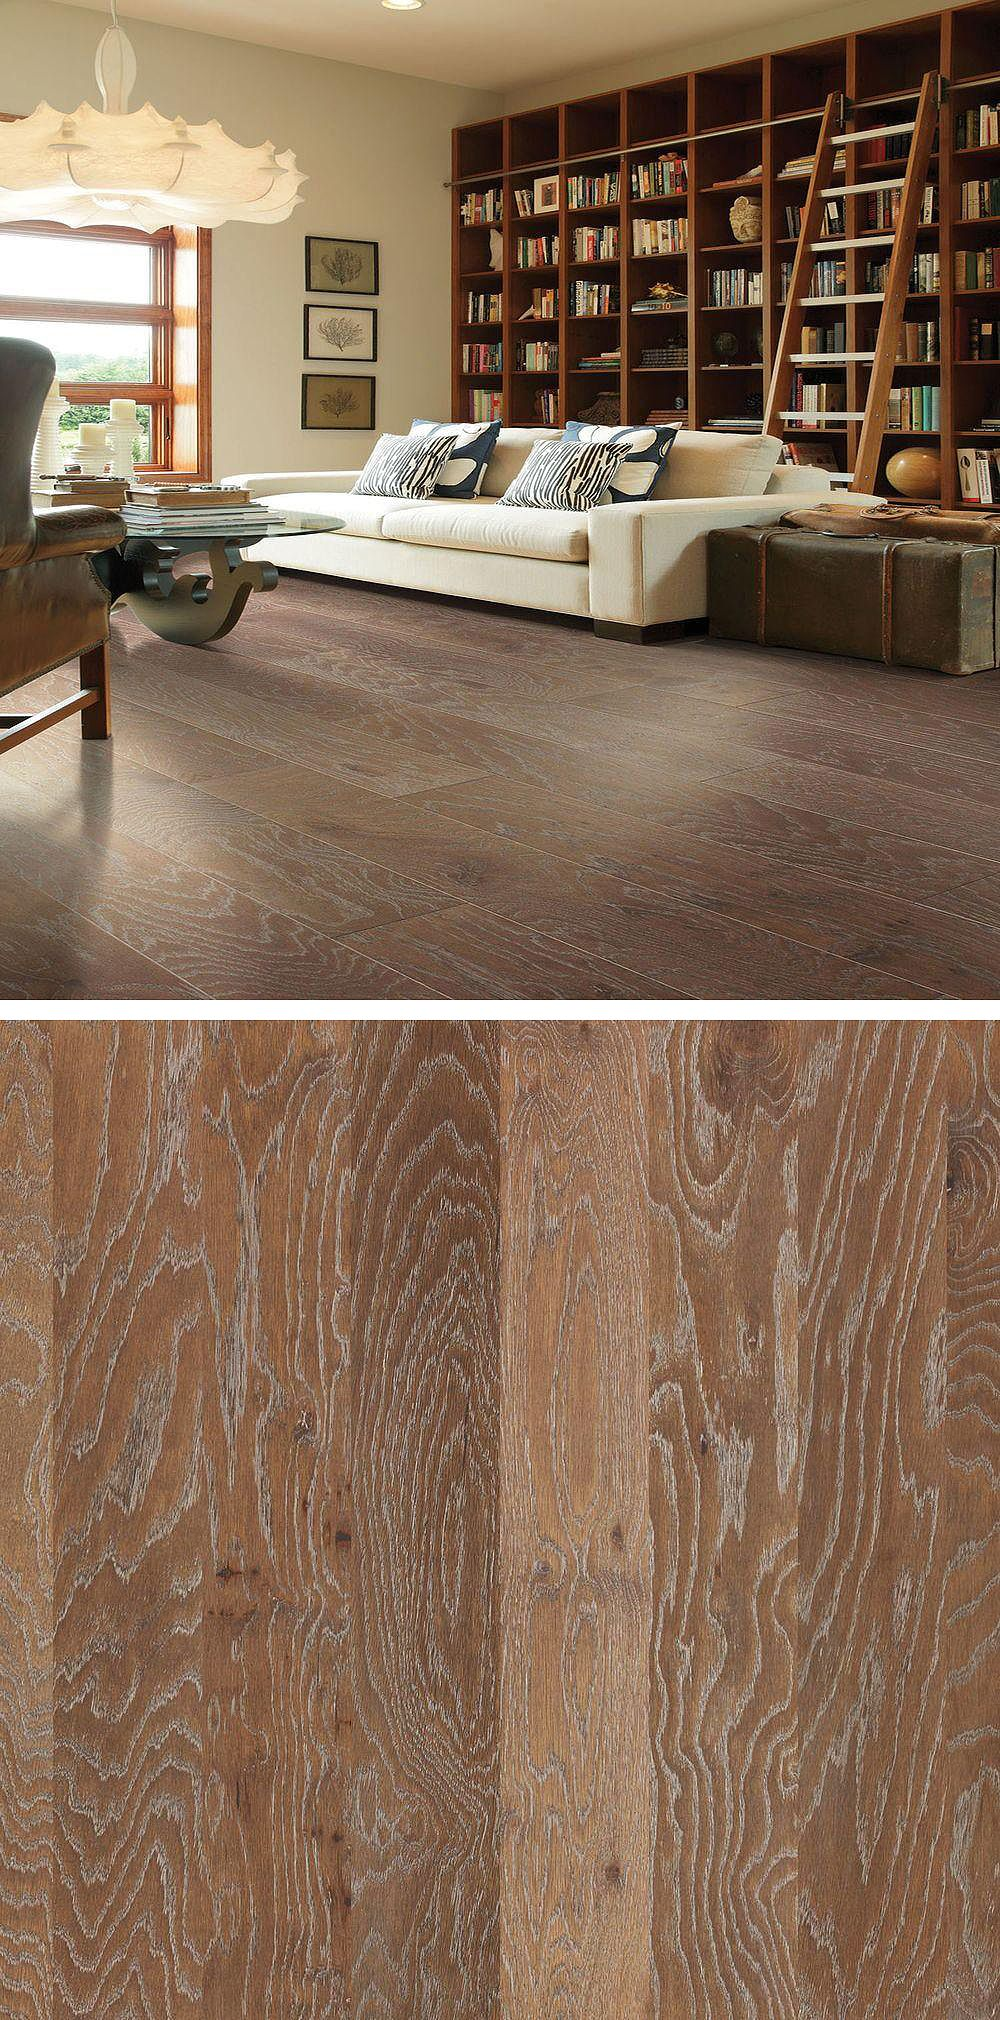 Collegiate Engineered Hardwood Flooring Offers Wide Planks That Have Been Beautifully Wire Brushed And The Grain Highlighted With White Against Richly